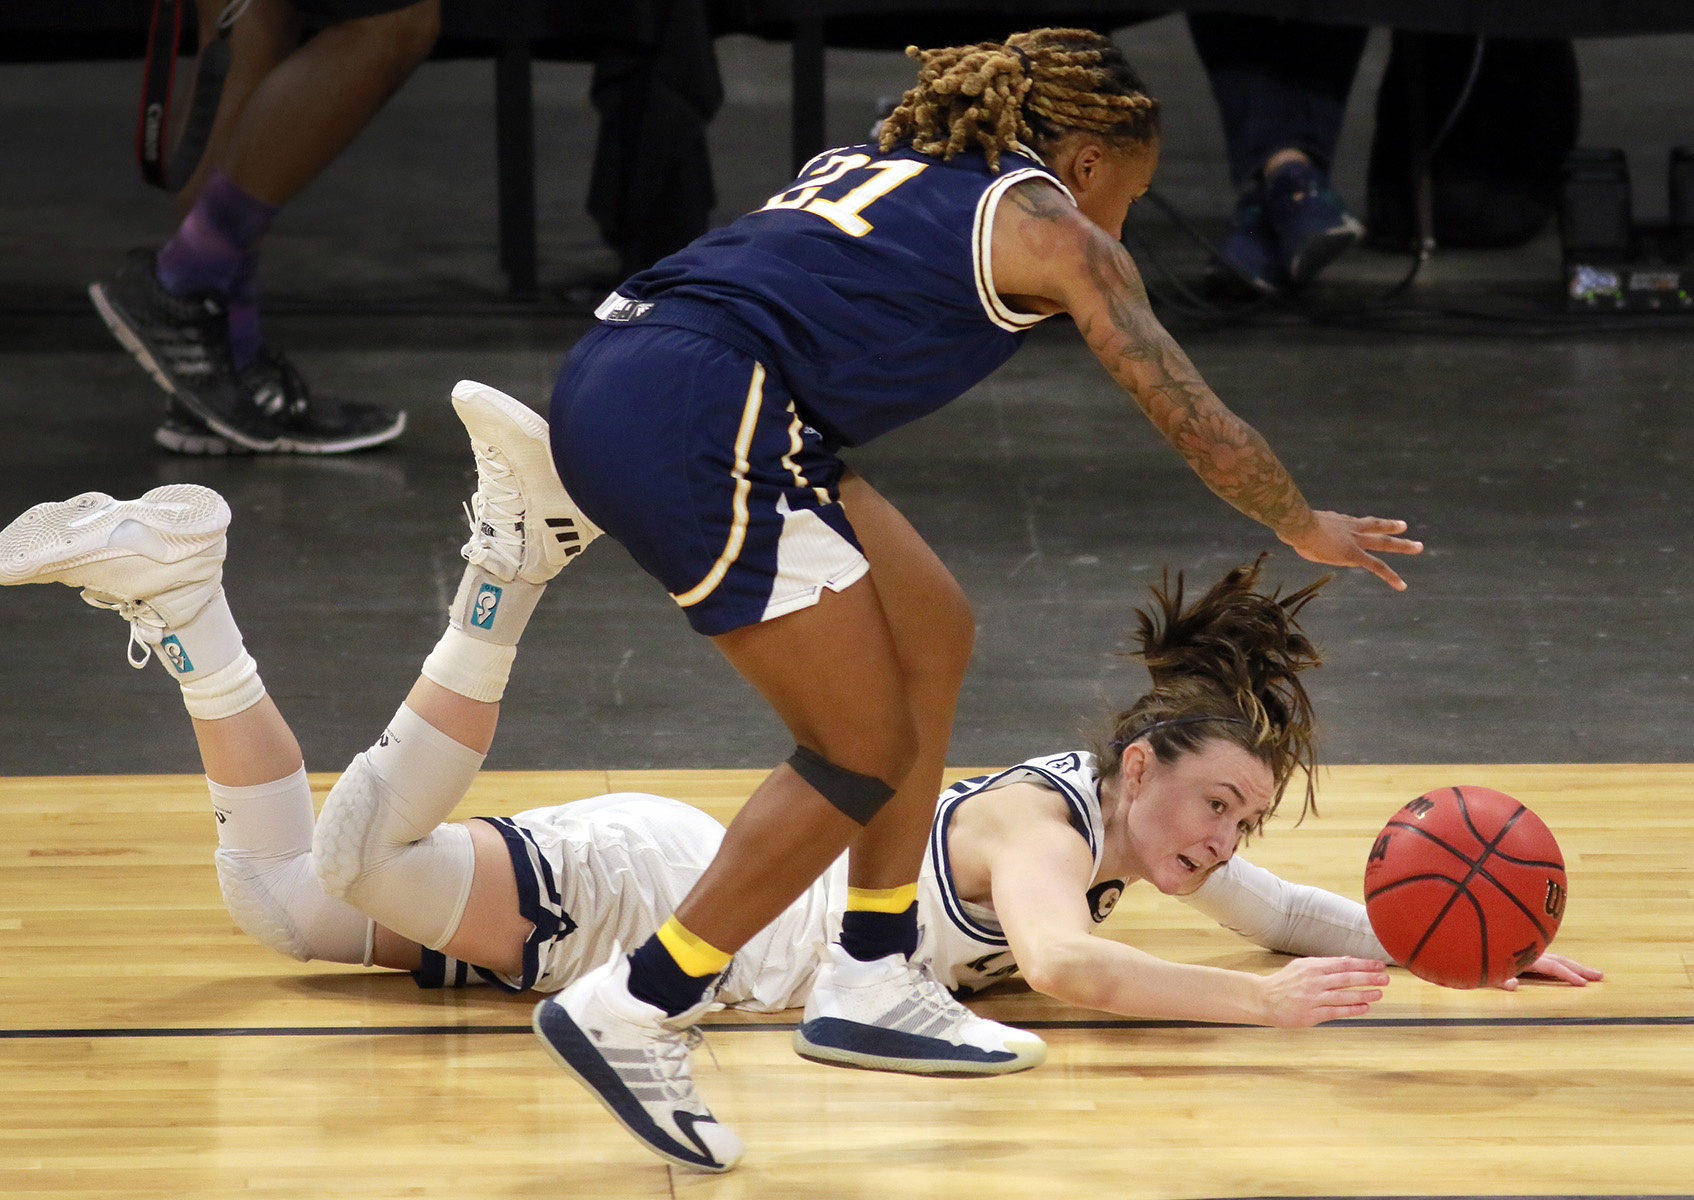 UC Davis' Mackenzie Trpcic (00) and UC Irvine's Haleigh Talbert (21) go after a loose ball during the first half of an NCAA college basketball game in the championship of the Big West Conference tournament.